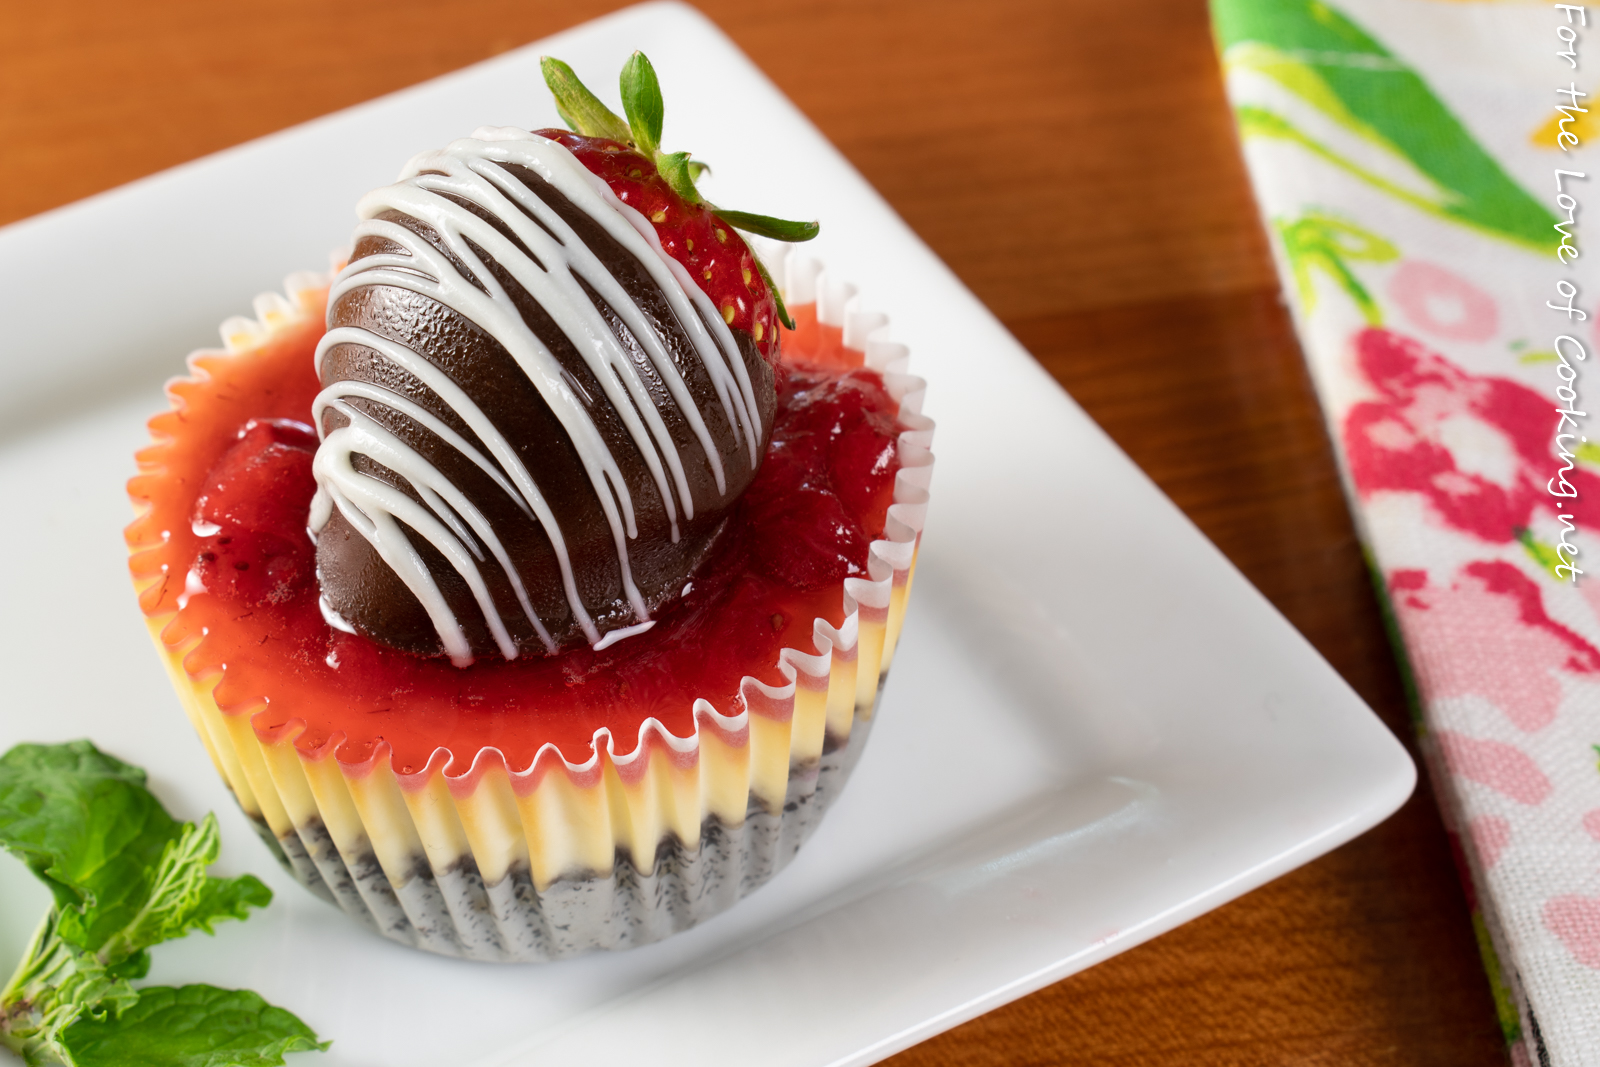 Mini Strawberry Cheesecakes with Chocolate Covered Strawberries